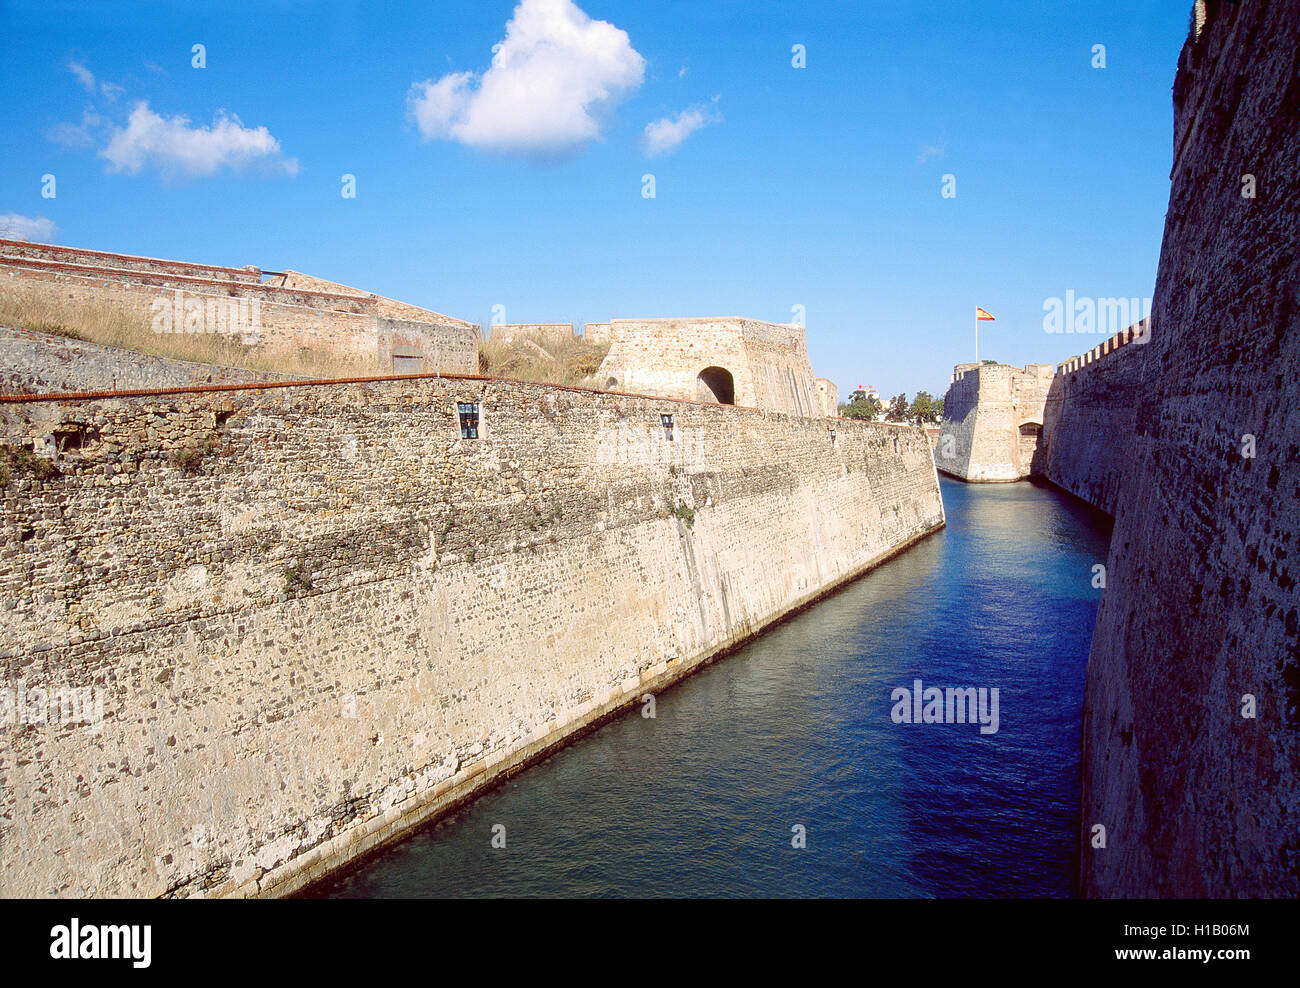 City wall and canal. Ceuta, Spain. - Stock Image